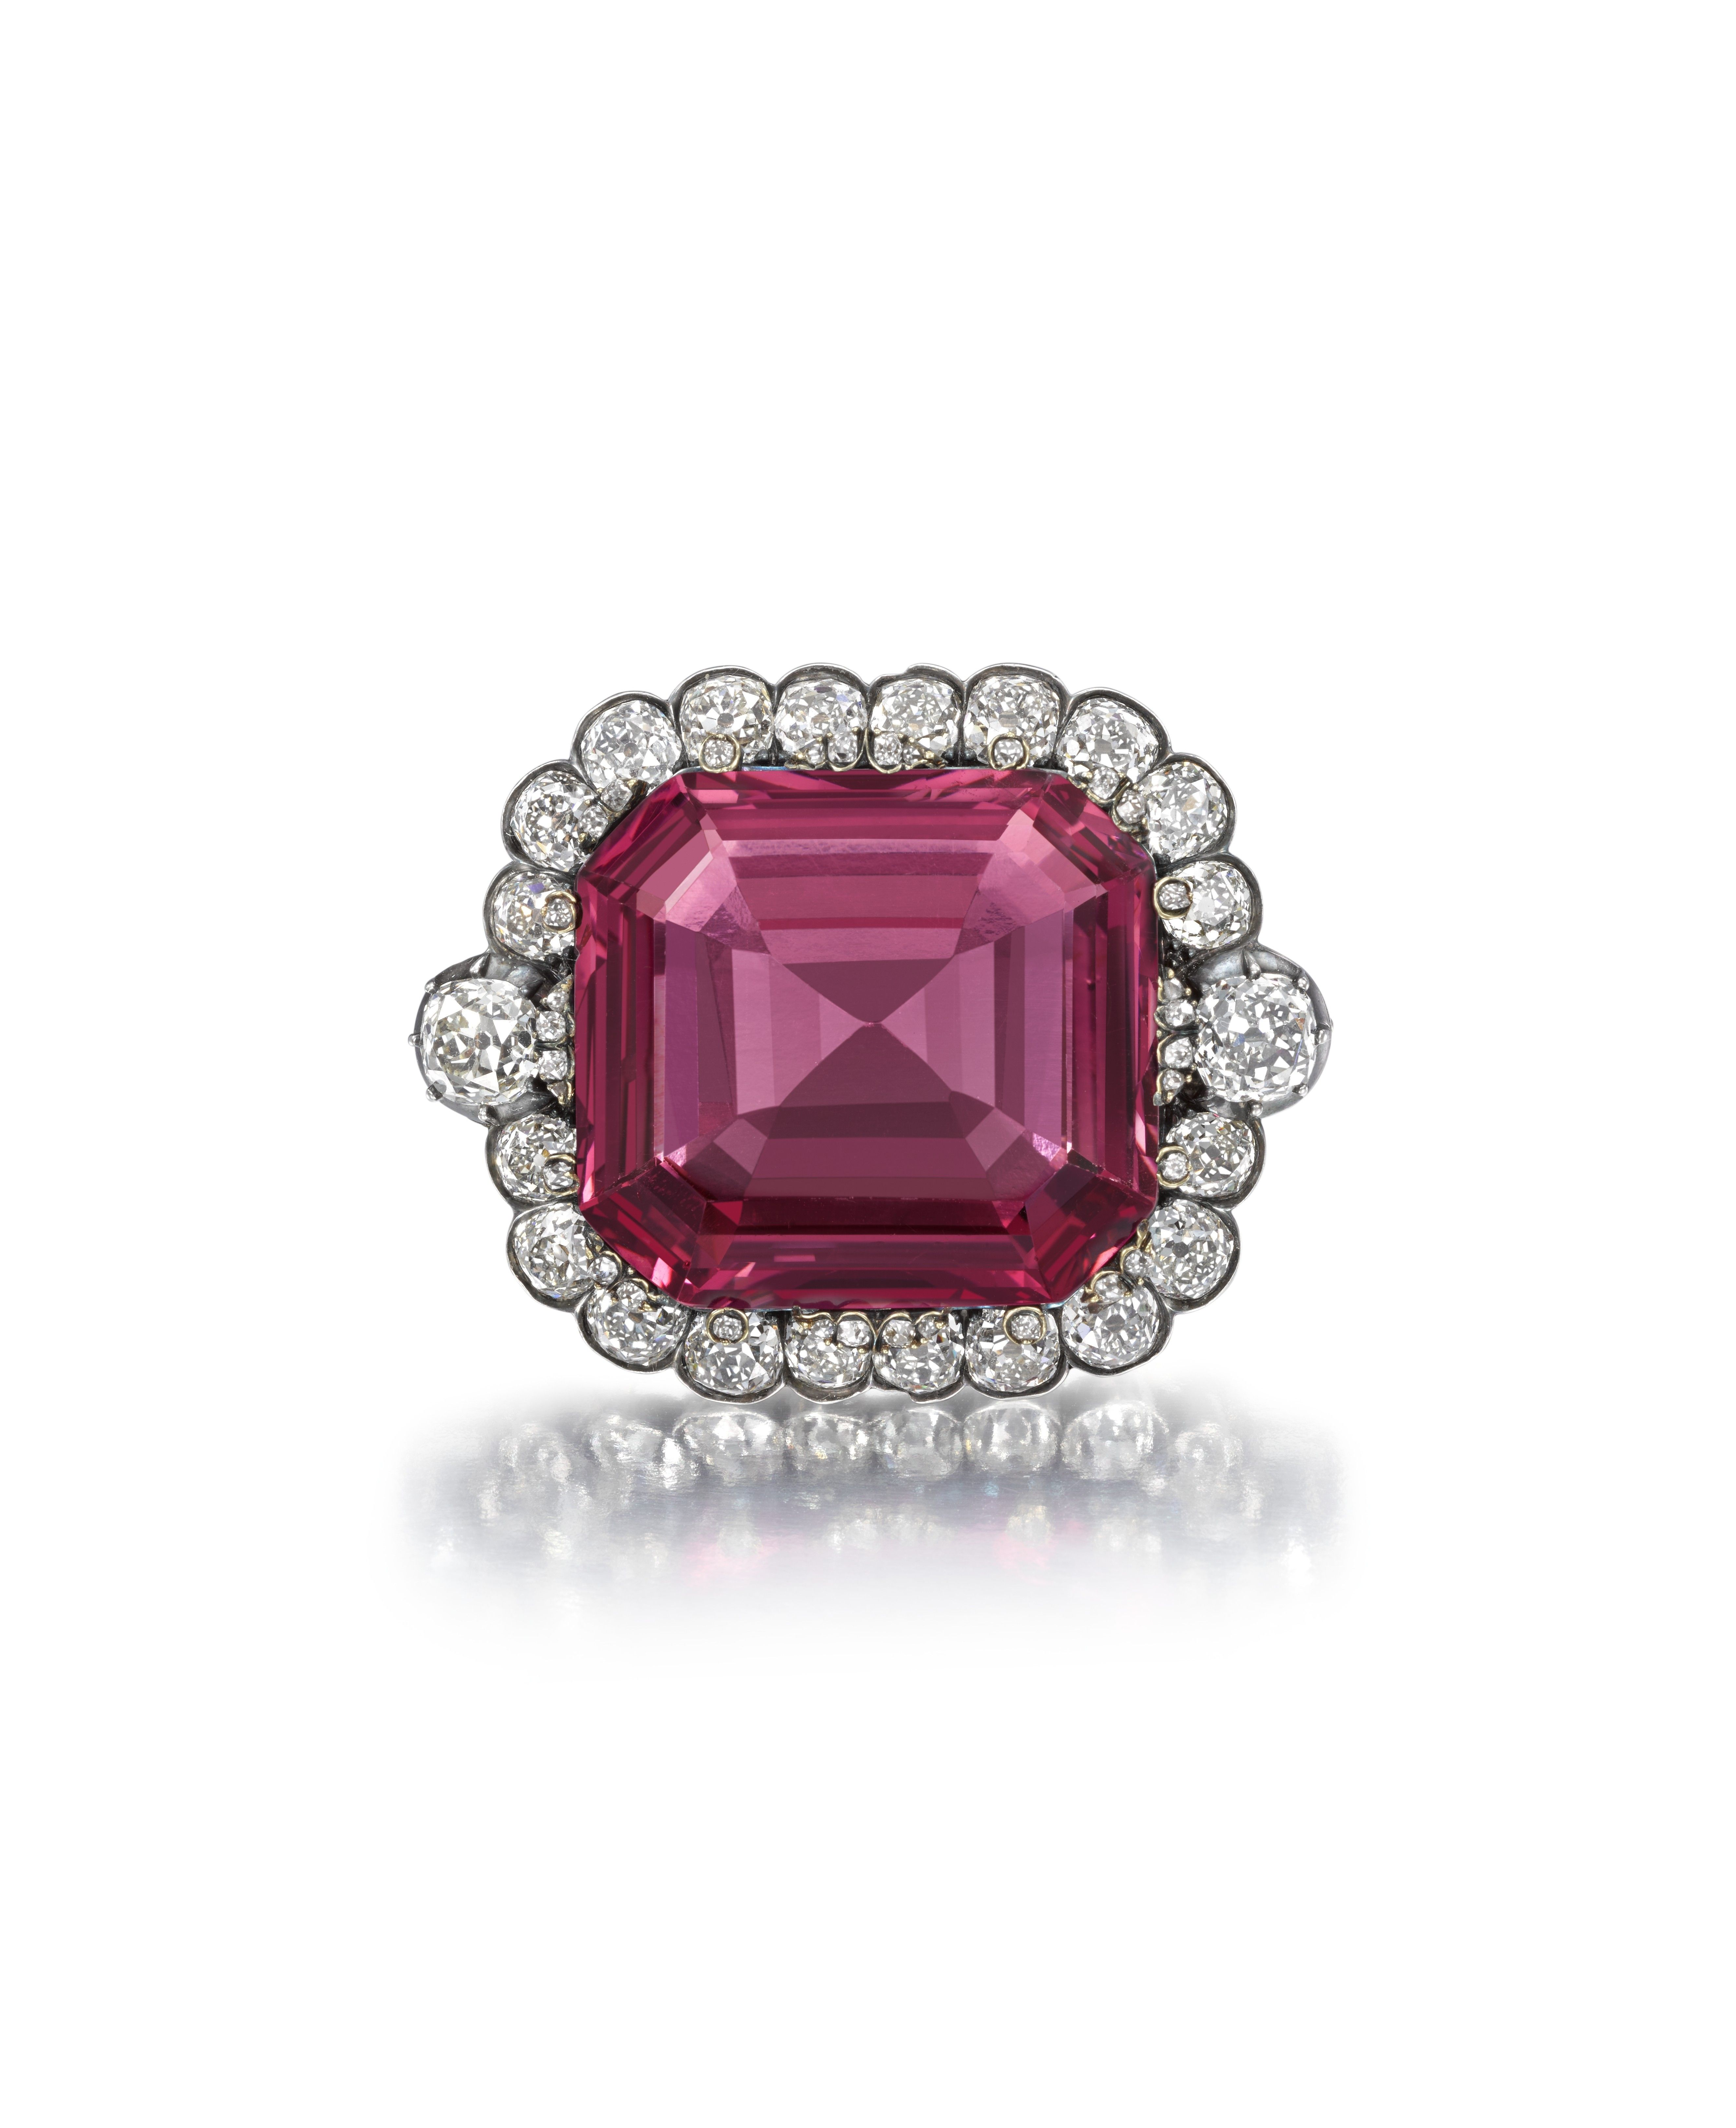 Jewels in History: The Hope Spinel